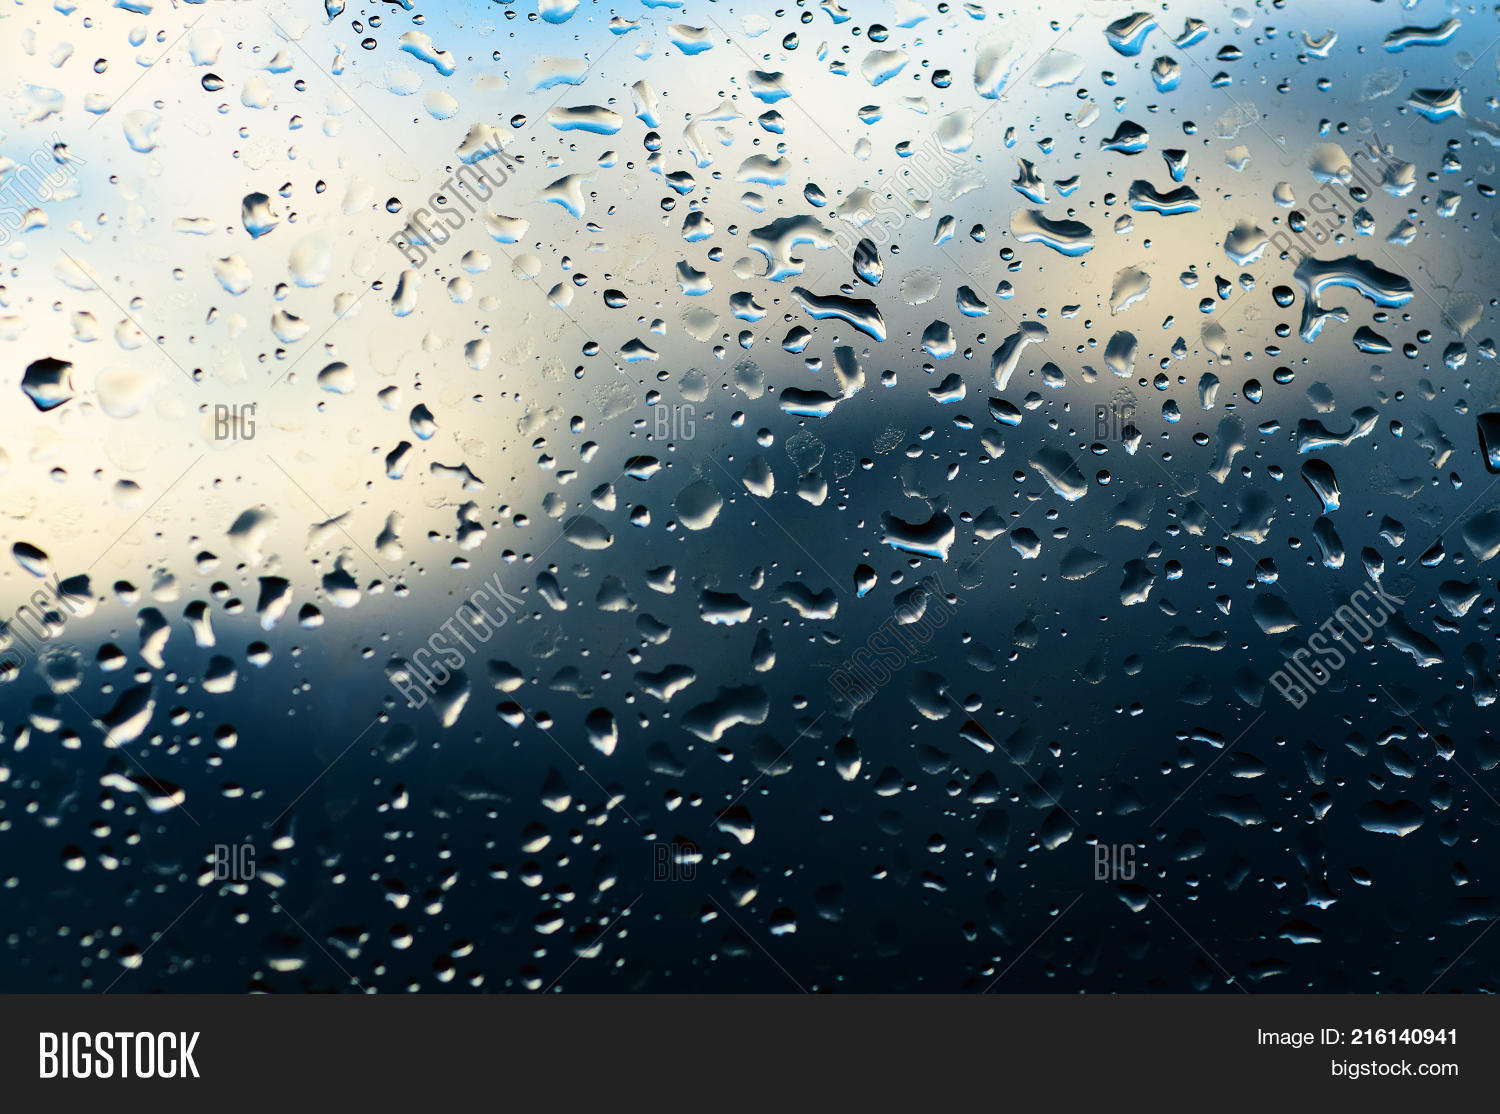 Rainy Wet Cold Sky Eco Image & Photo (Free Trial) | Bigstock